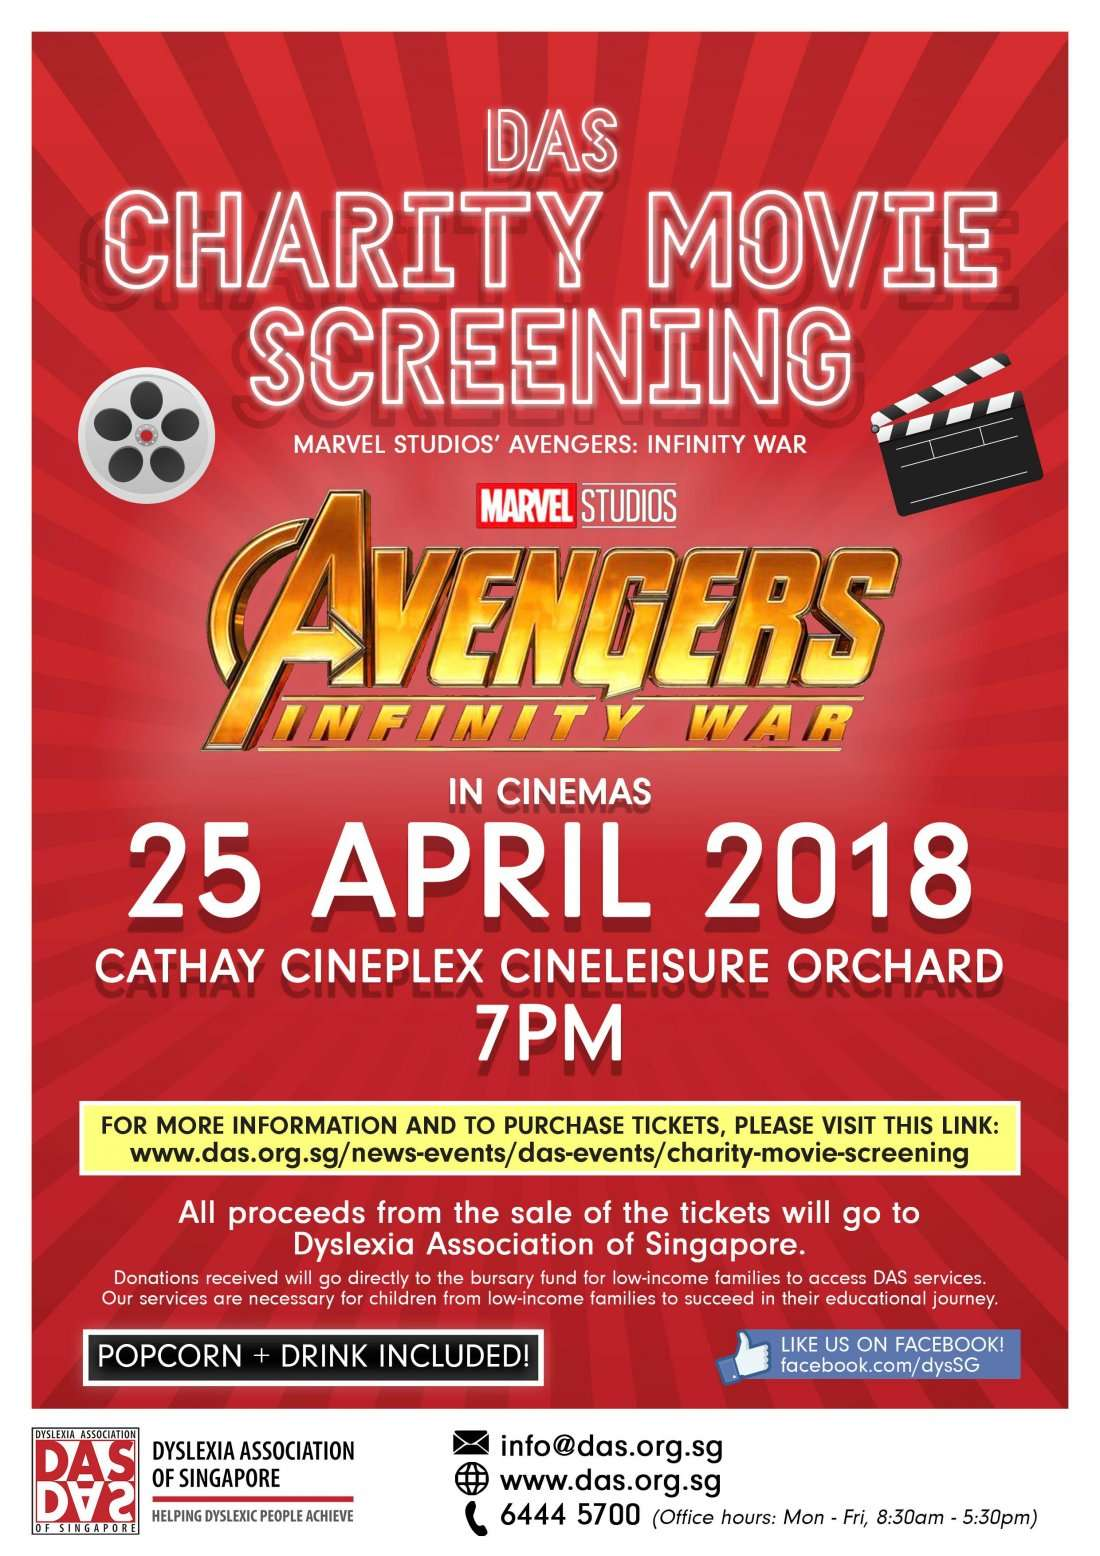 DAS Charity Movie Screening